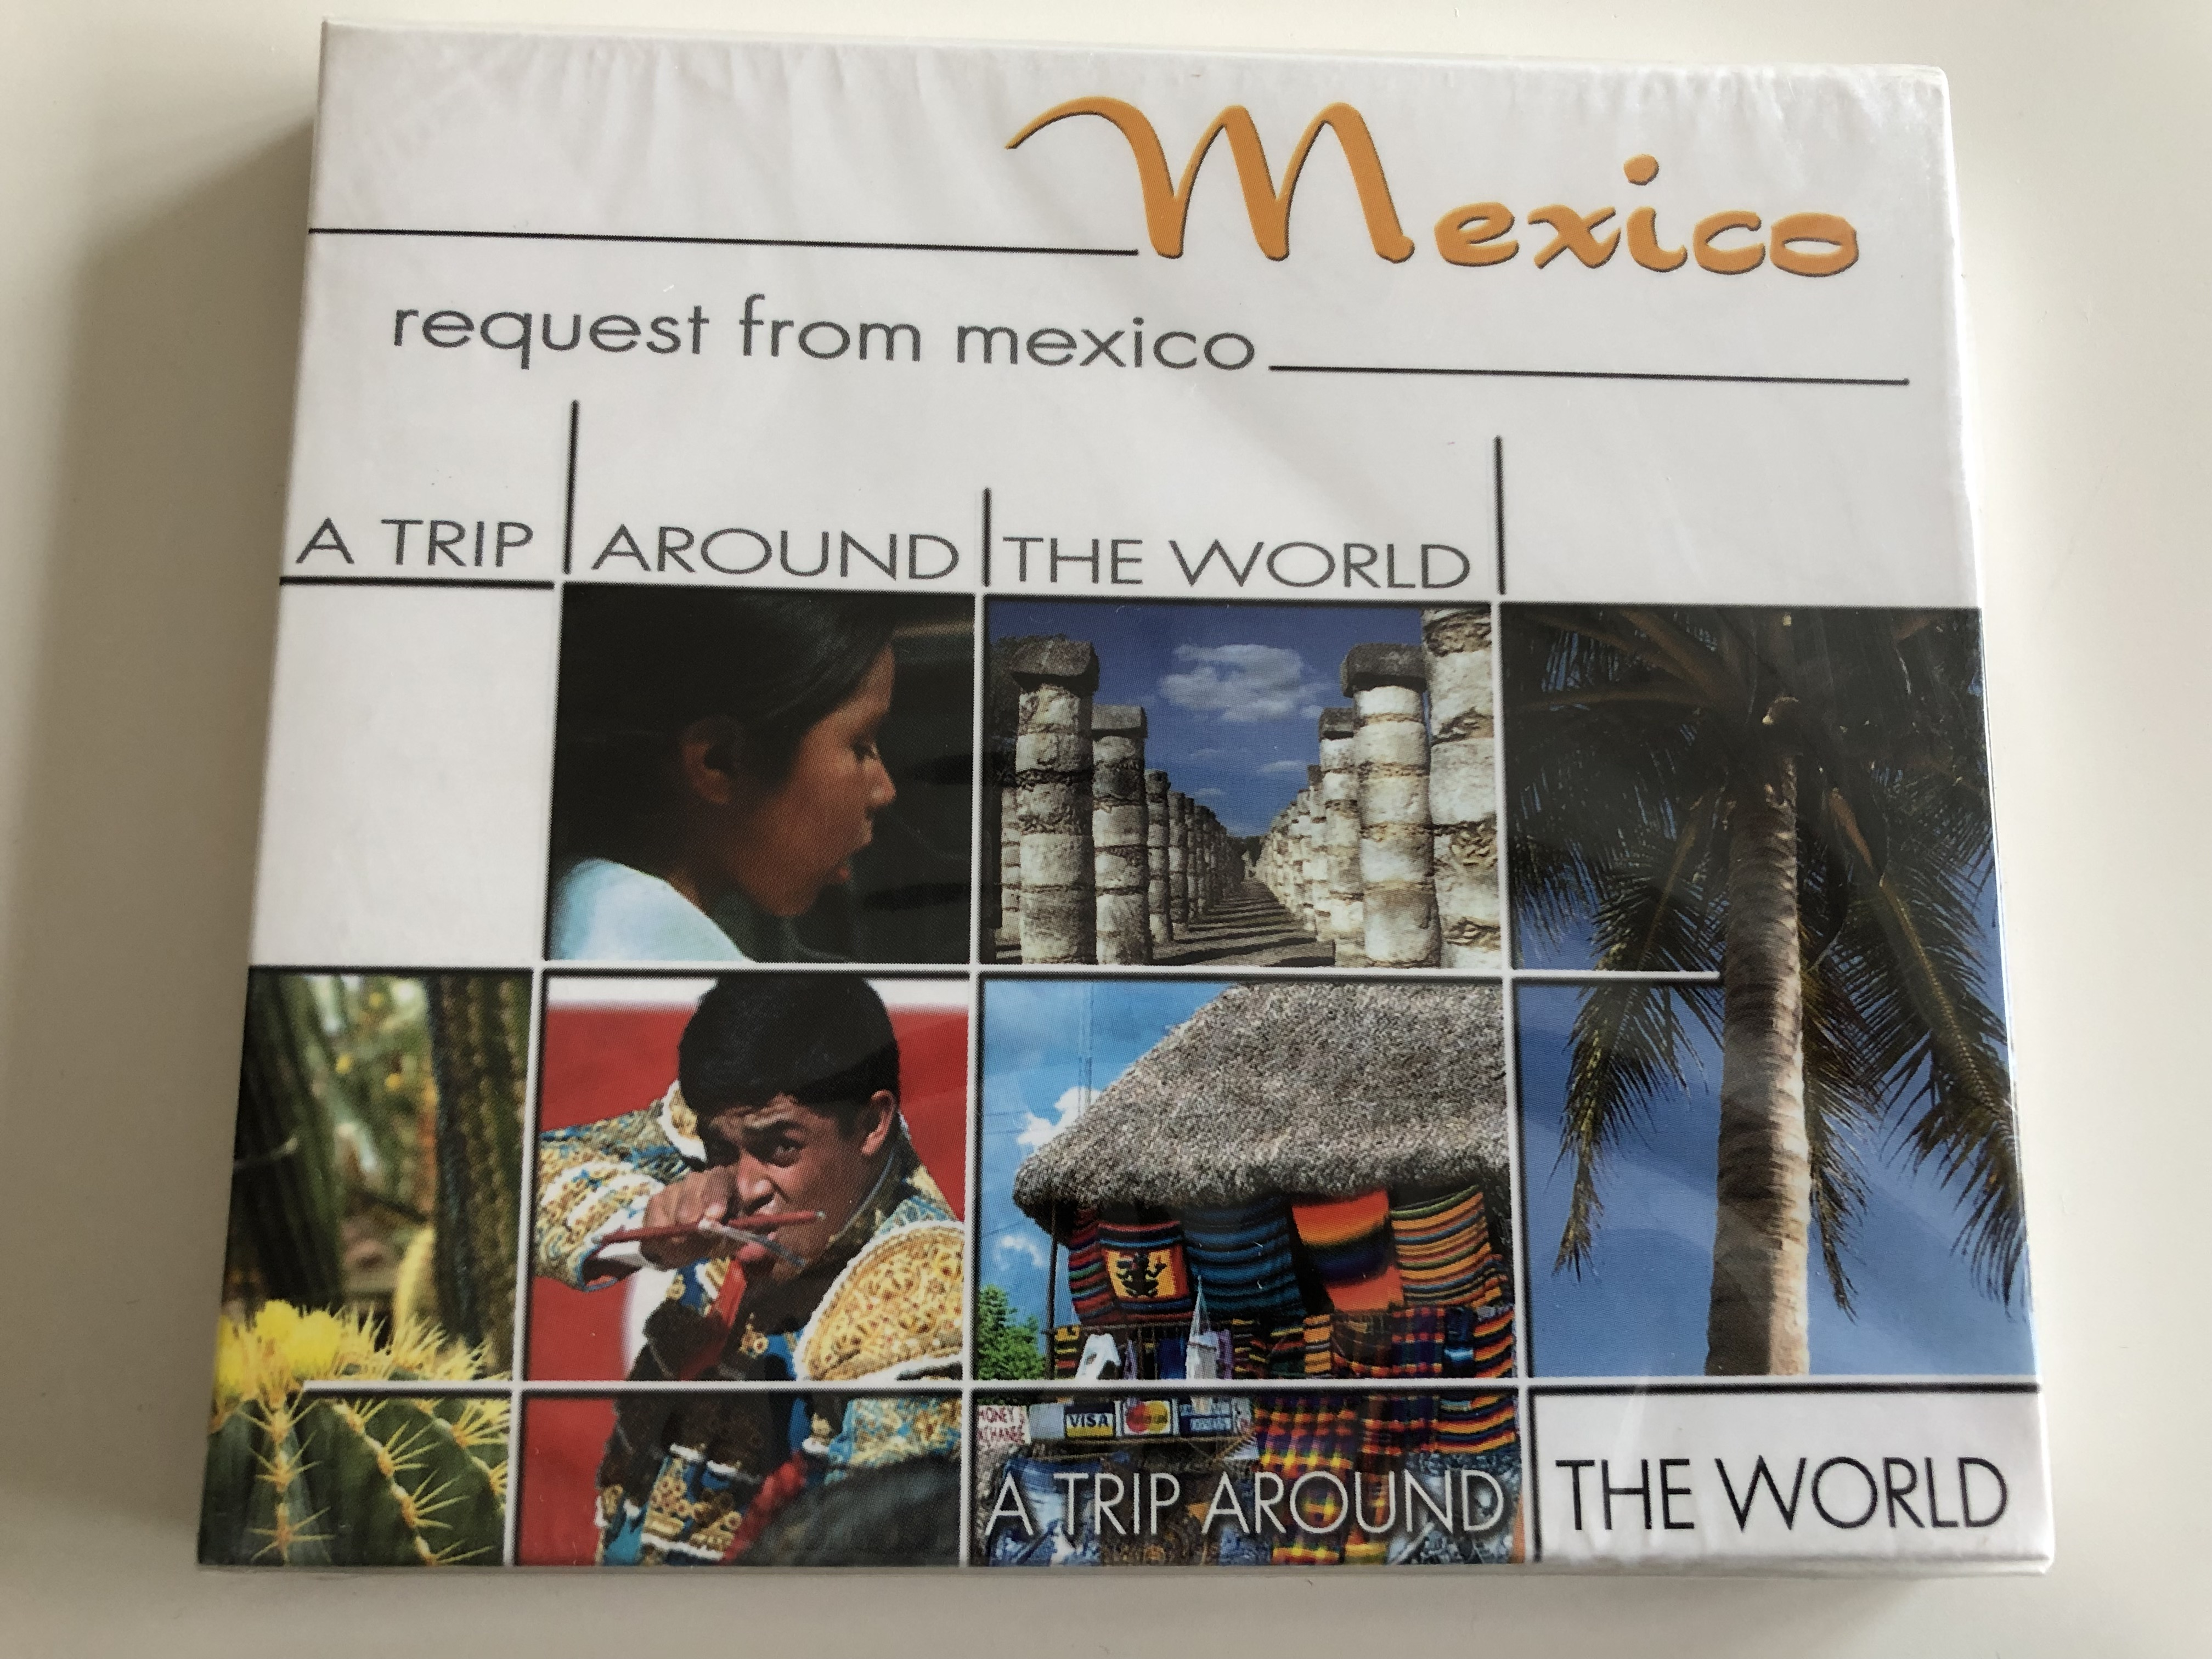 mexico-request-from-mexico-a-trip-around-the-world-artists-trio-odemira-audio-cd-2005-luxury-multimedia-ltd-galaxy-music-1-.jpg